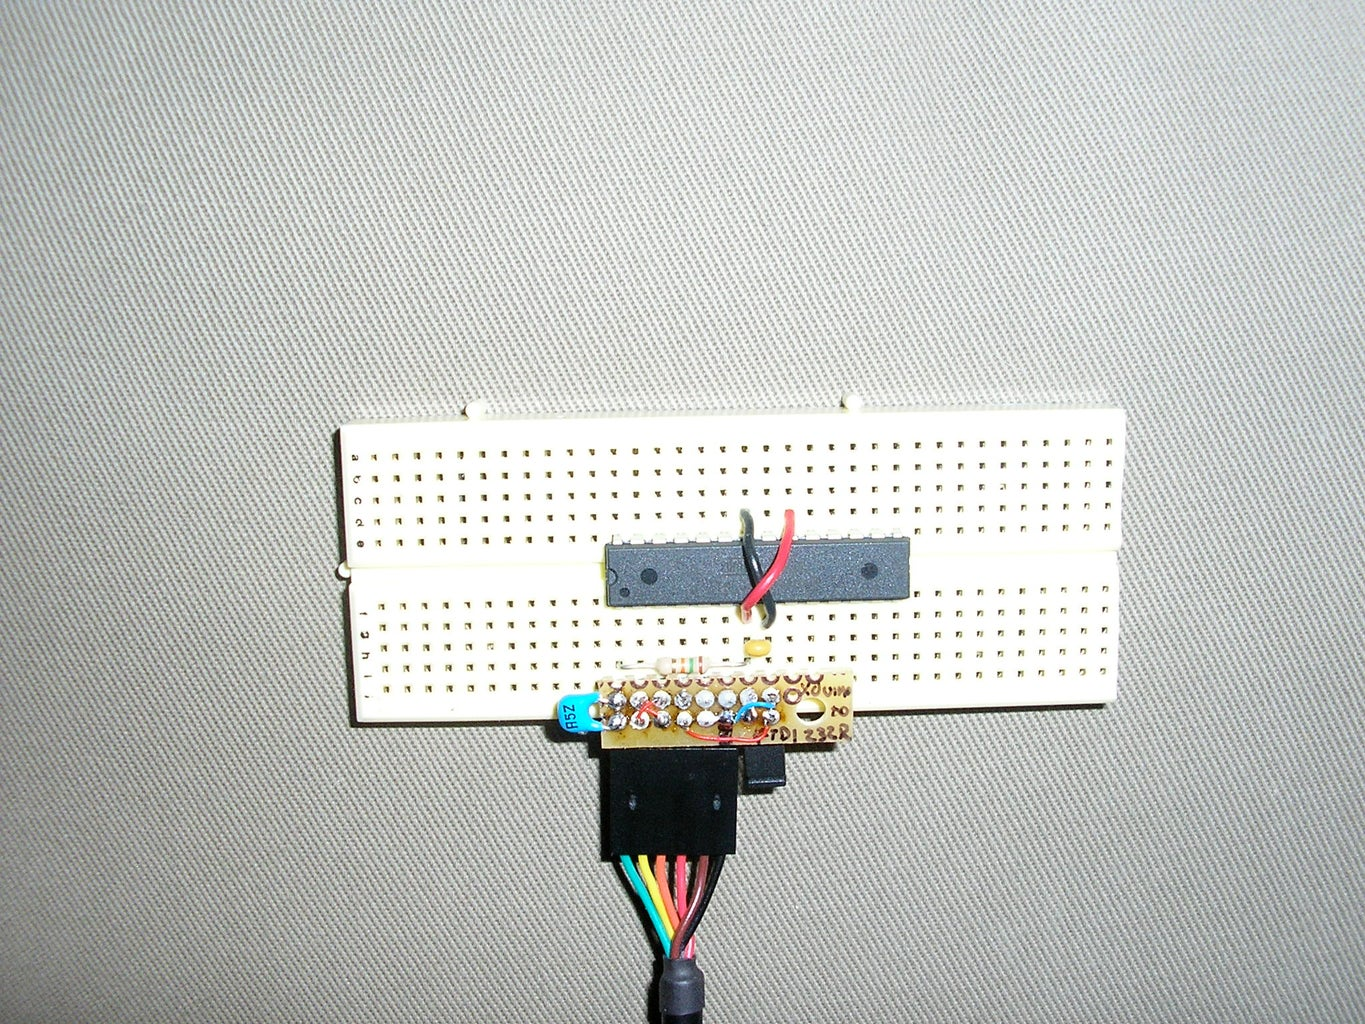 With Microcontrollers